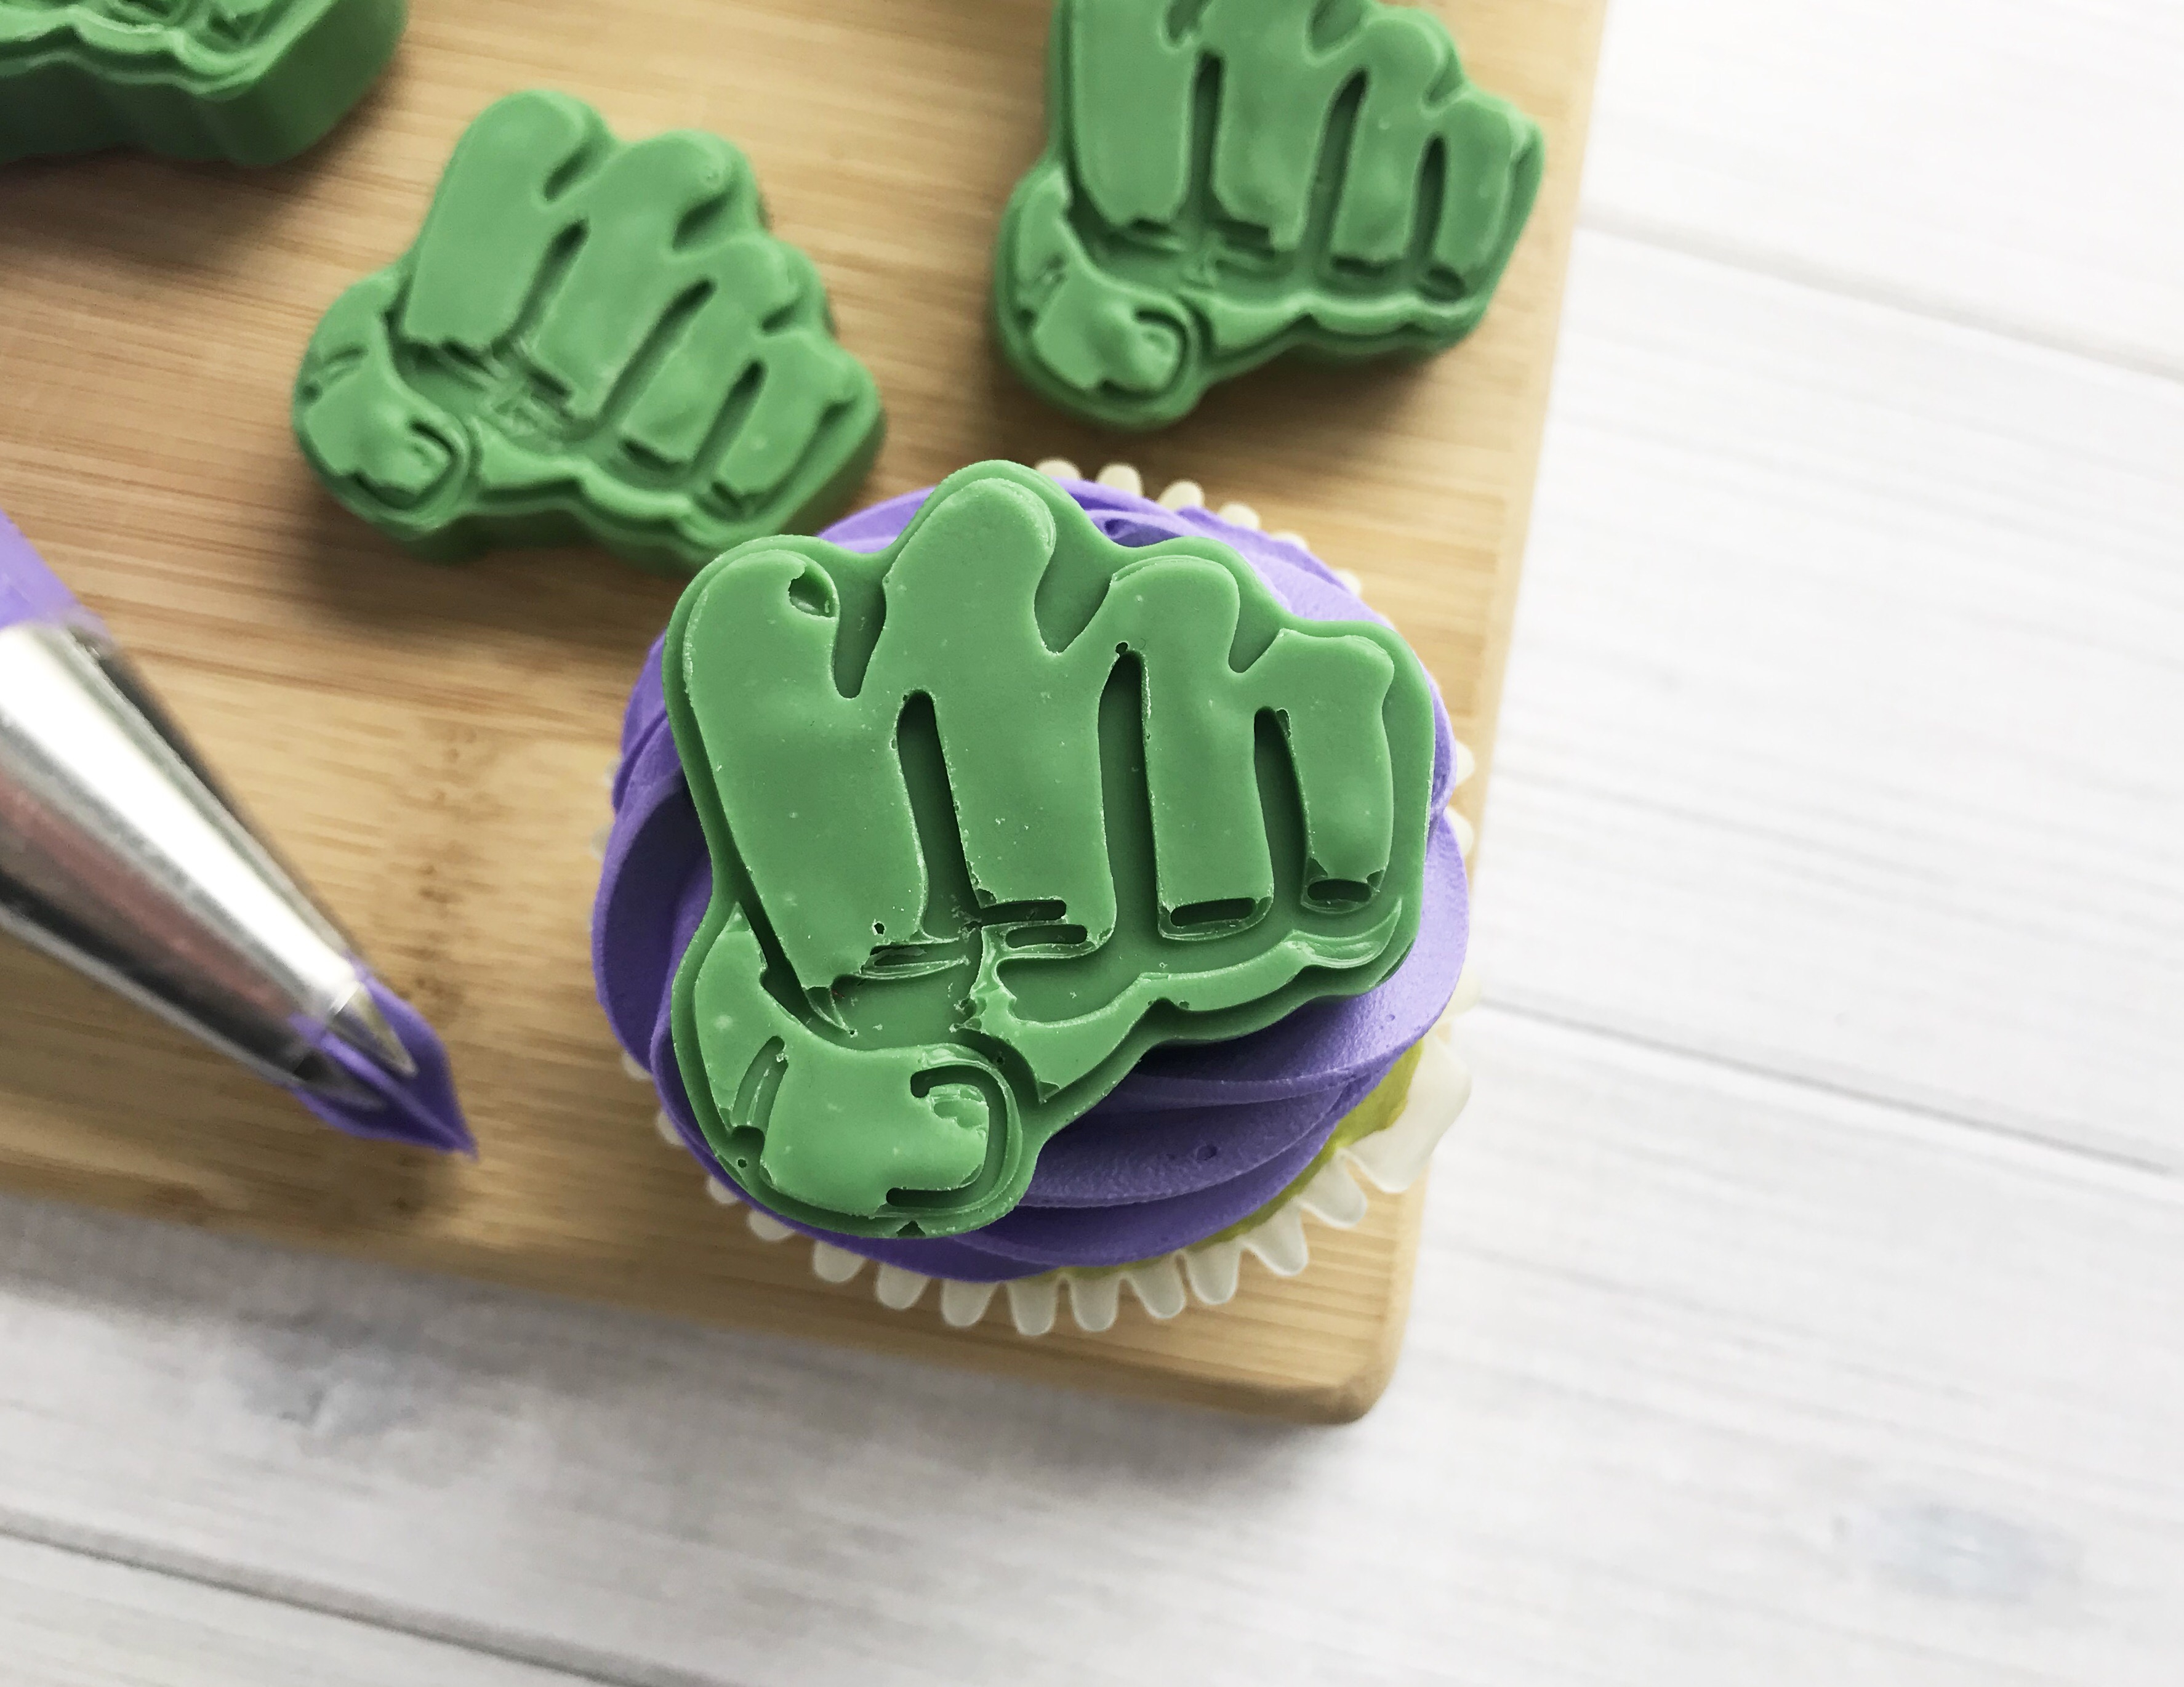 Hulk Cupcakes, SuperHero Party Ideas, Superhero Party, Avengers Desserts, Avengers Infinity War Recipes